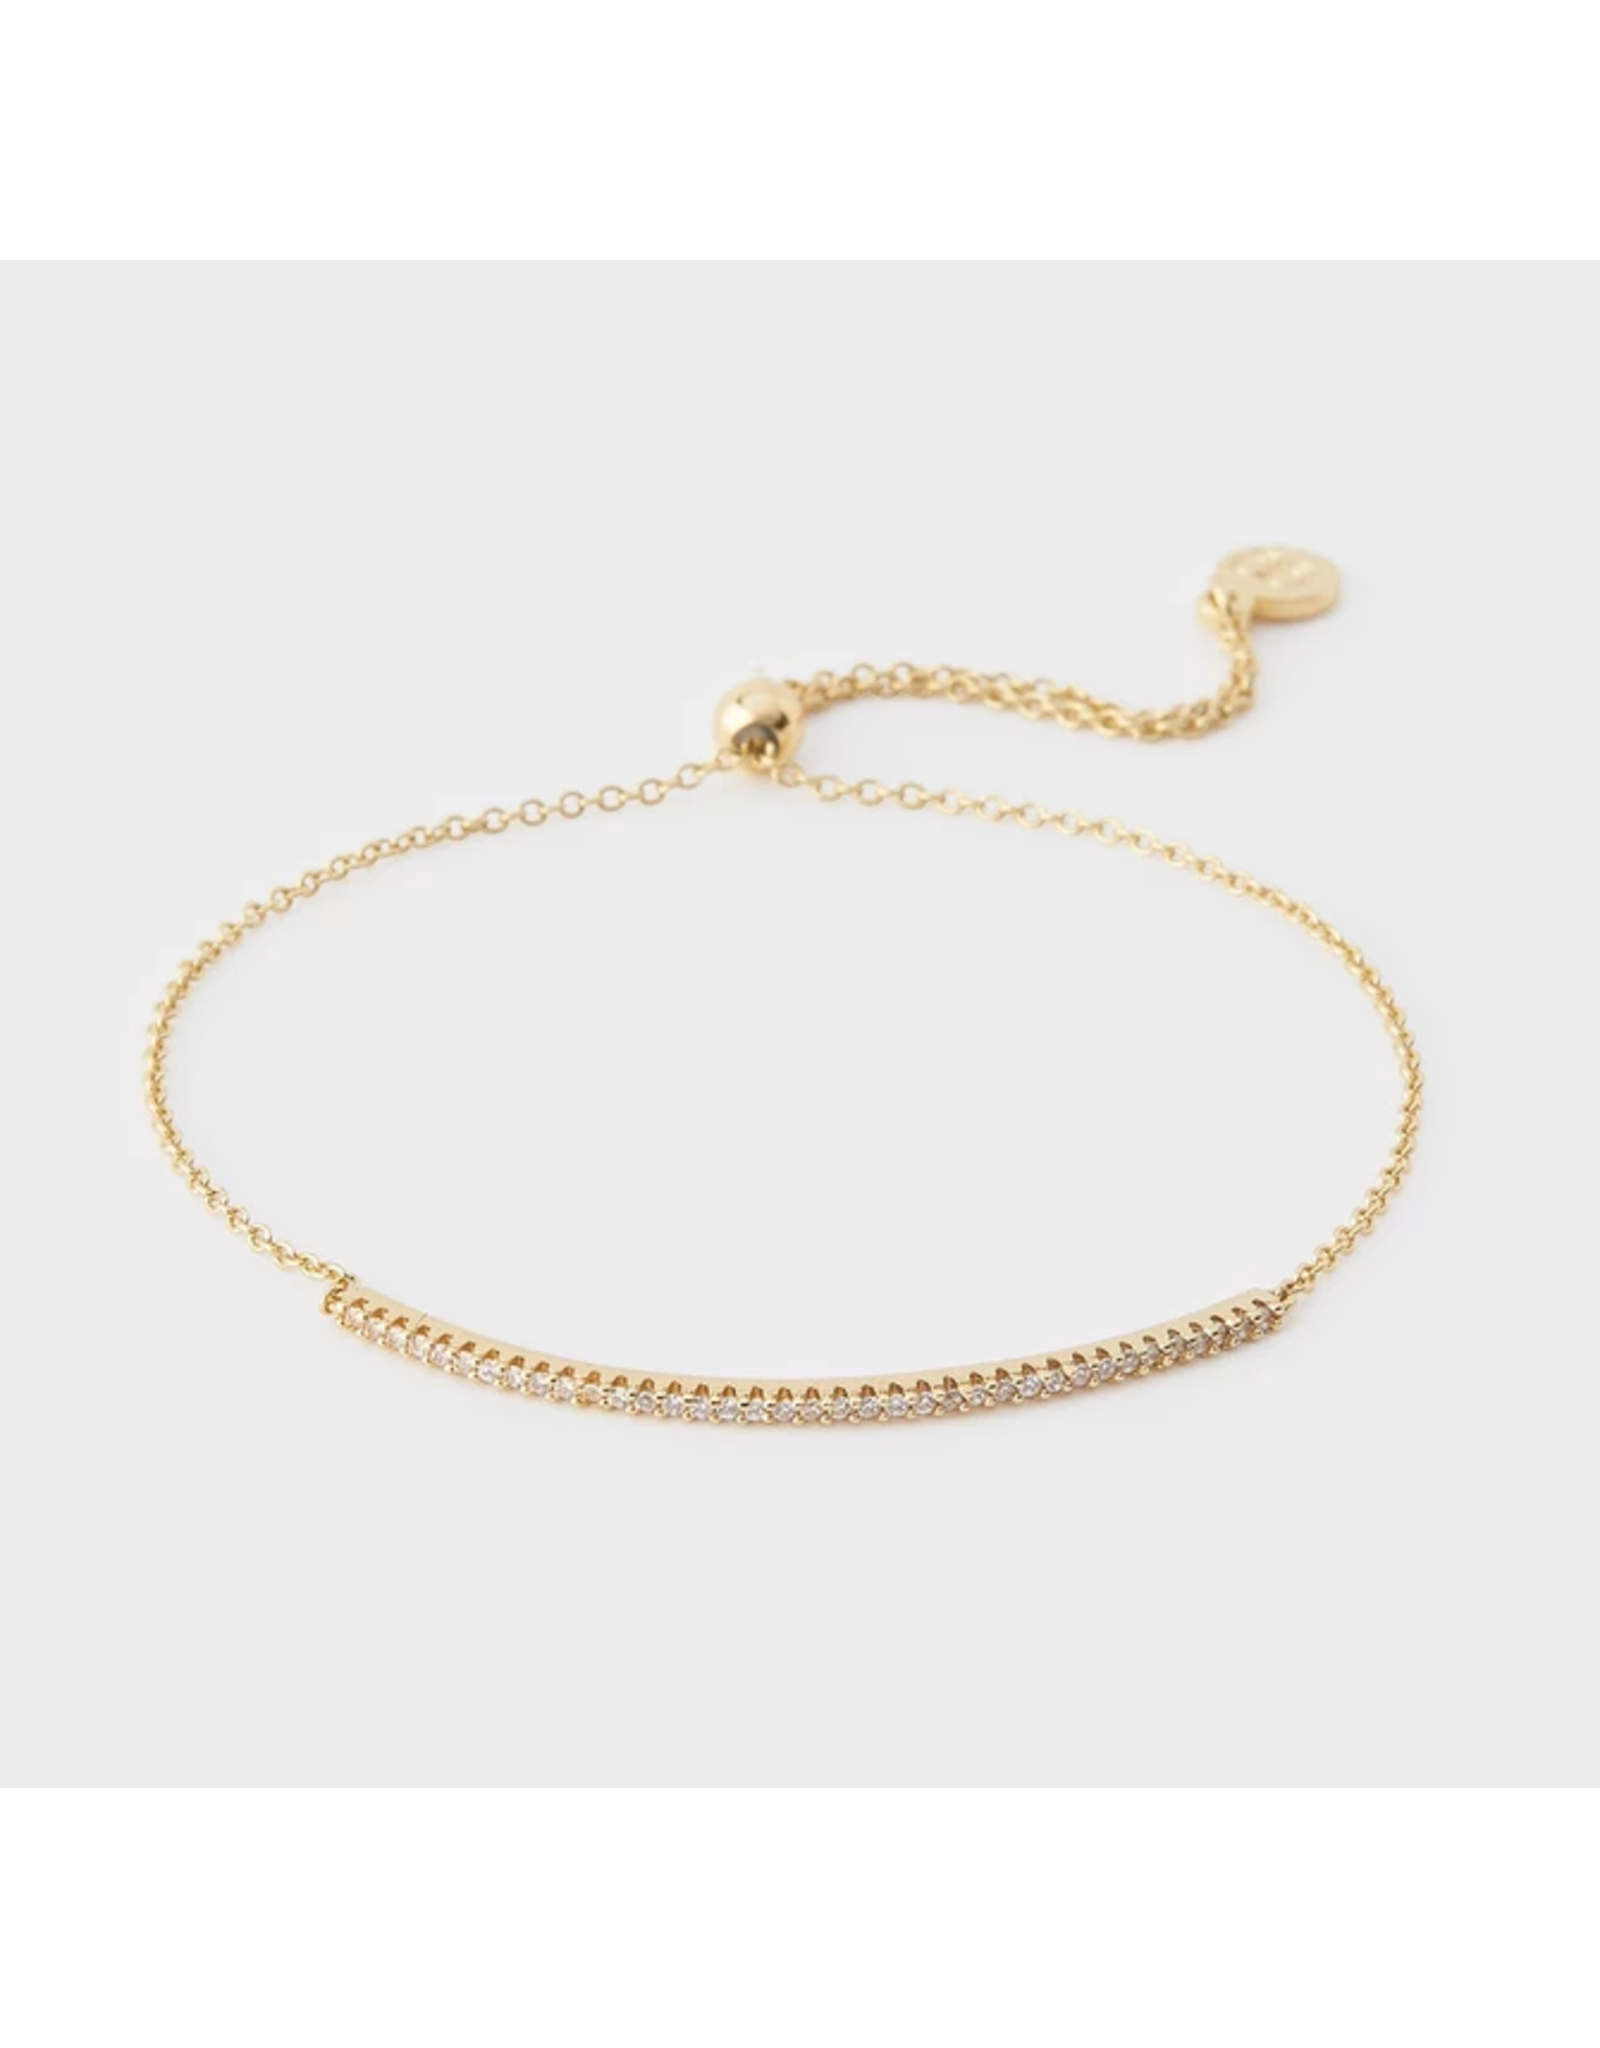 Shimmer Adjustable Bracelet - gold